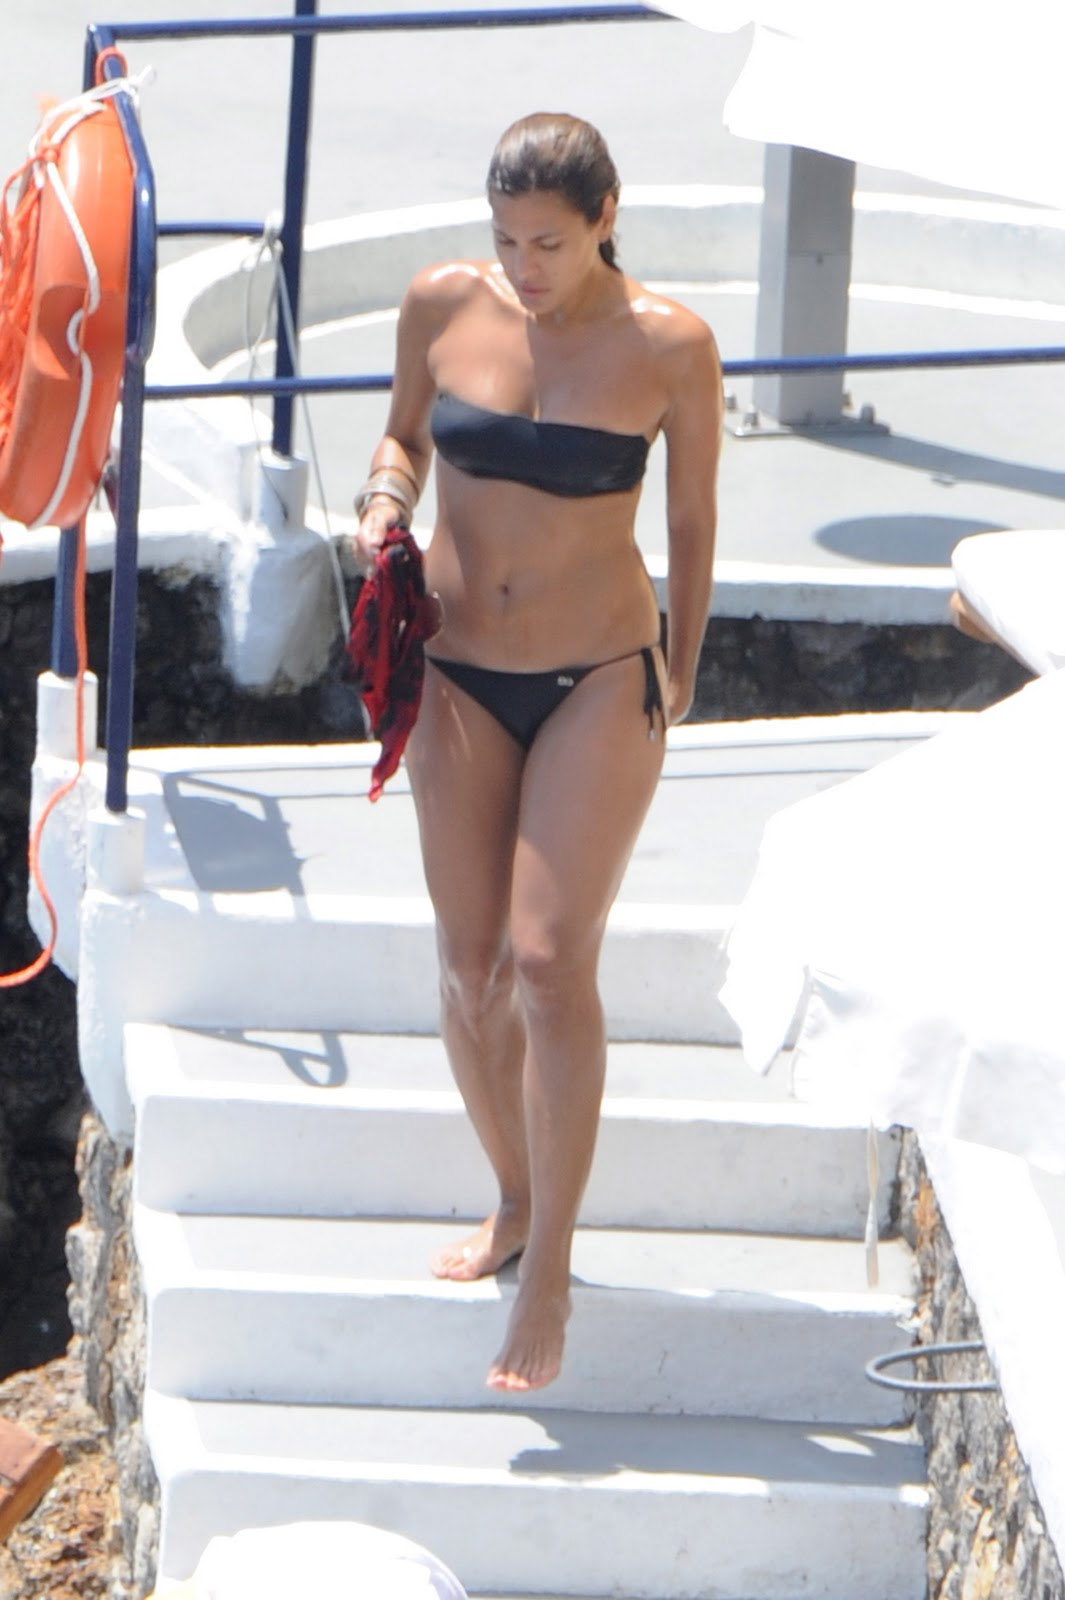 eva-mendes-at-a-nude-beach-s-e-x-n-u-d-e-real-doll